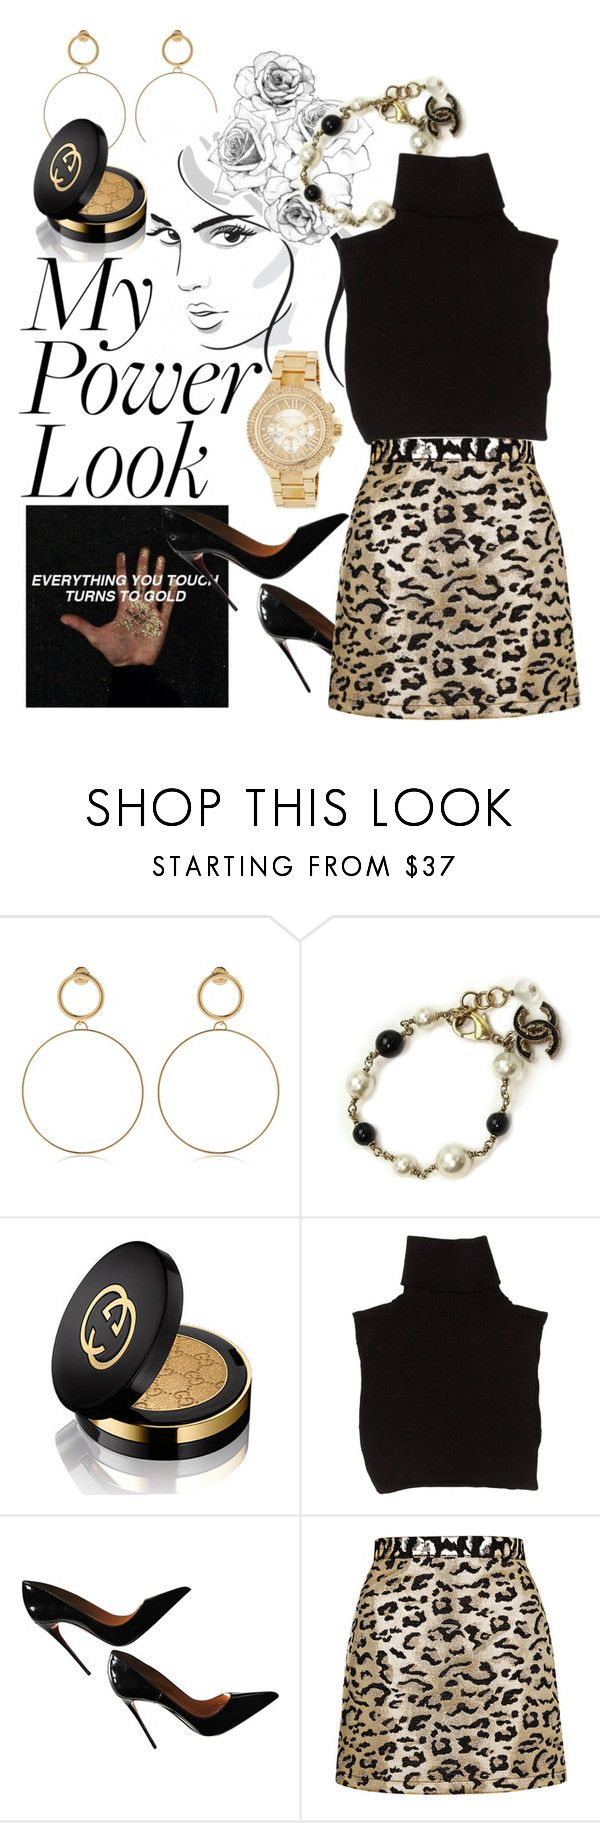 """""""el dia de hoy"""" by floo-carriillo ❤ liked on Polyvore featuring Maria Francesca Pepe, Chanel, Gucci, Marc Jacobs, Christian Louboutin, Topshop and MICHAEL Michael Kors"""